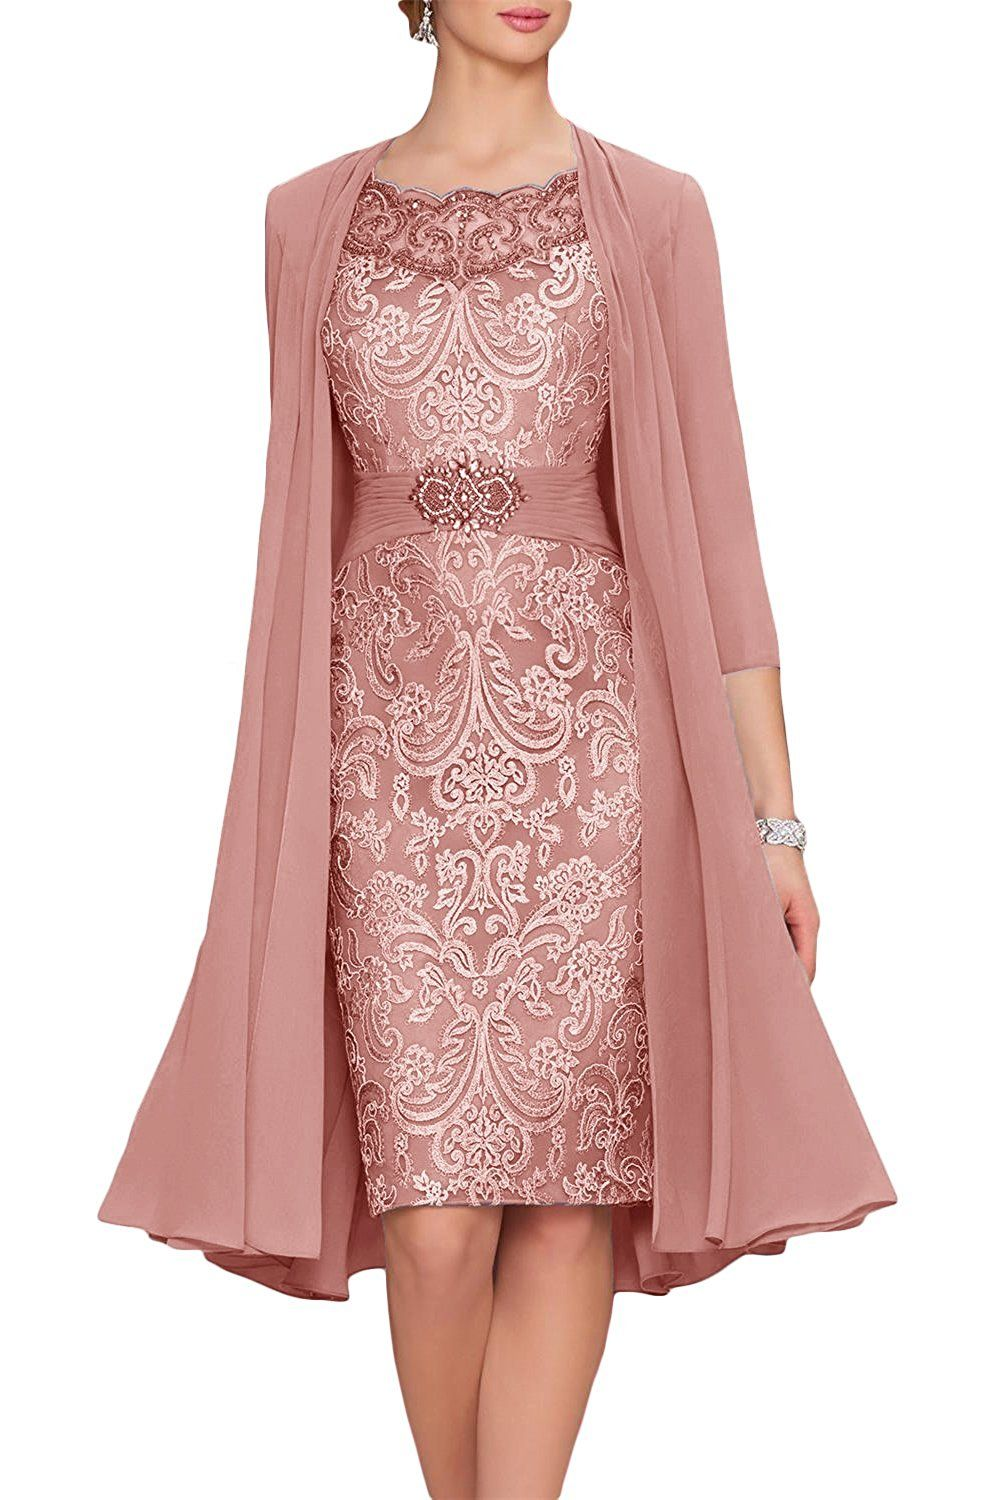 Newdeve Chiffon Mother Of The Bride Dresses Tea Length Two